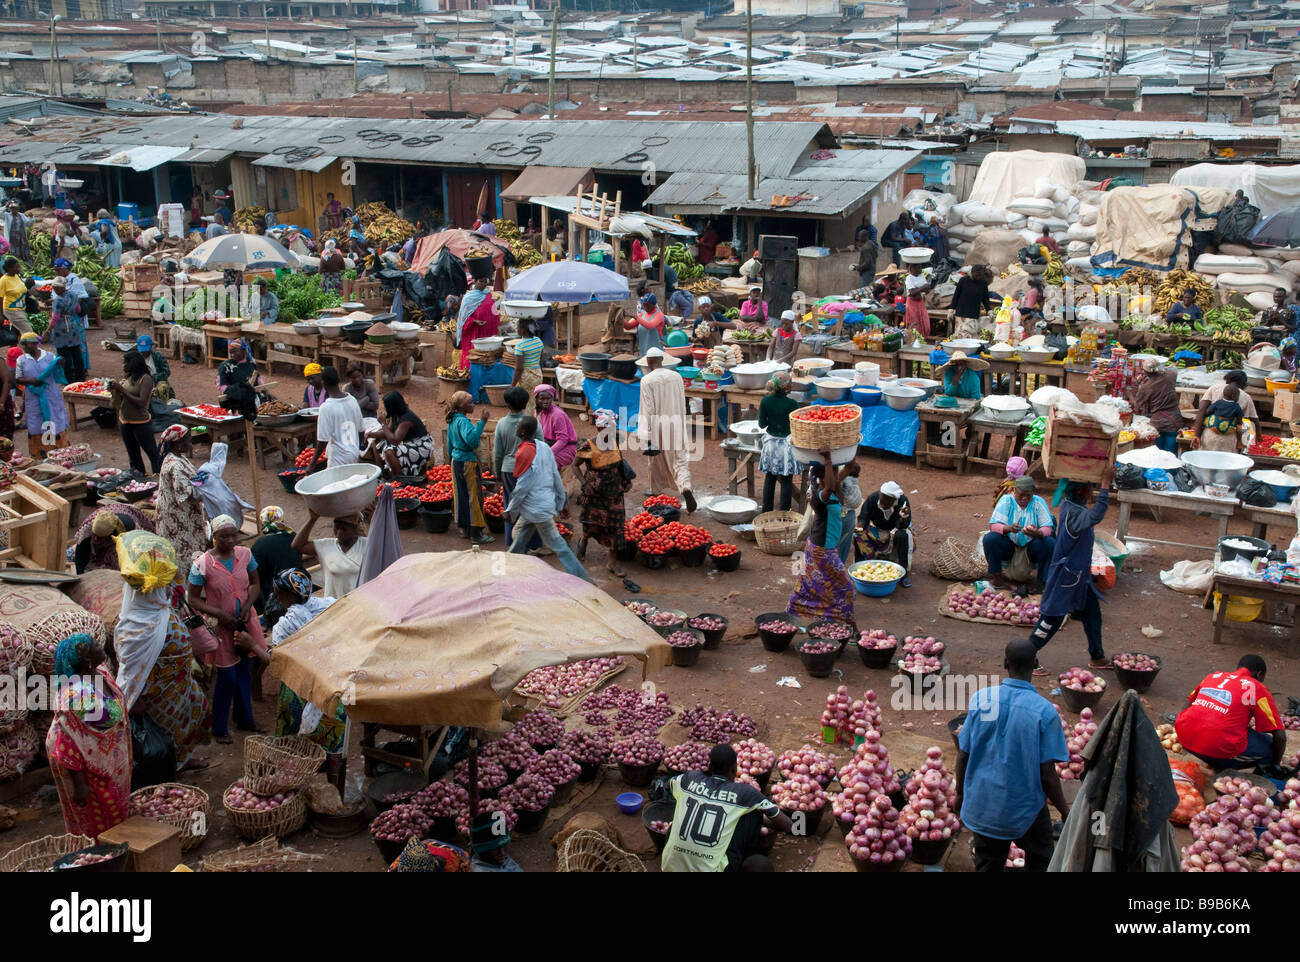 Food Market In Western Ghana Stock Photos & Food Market In